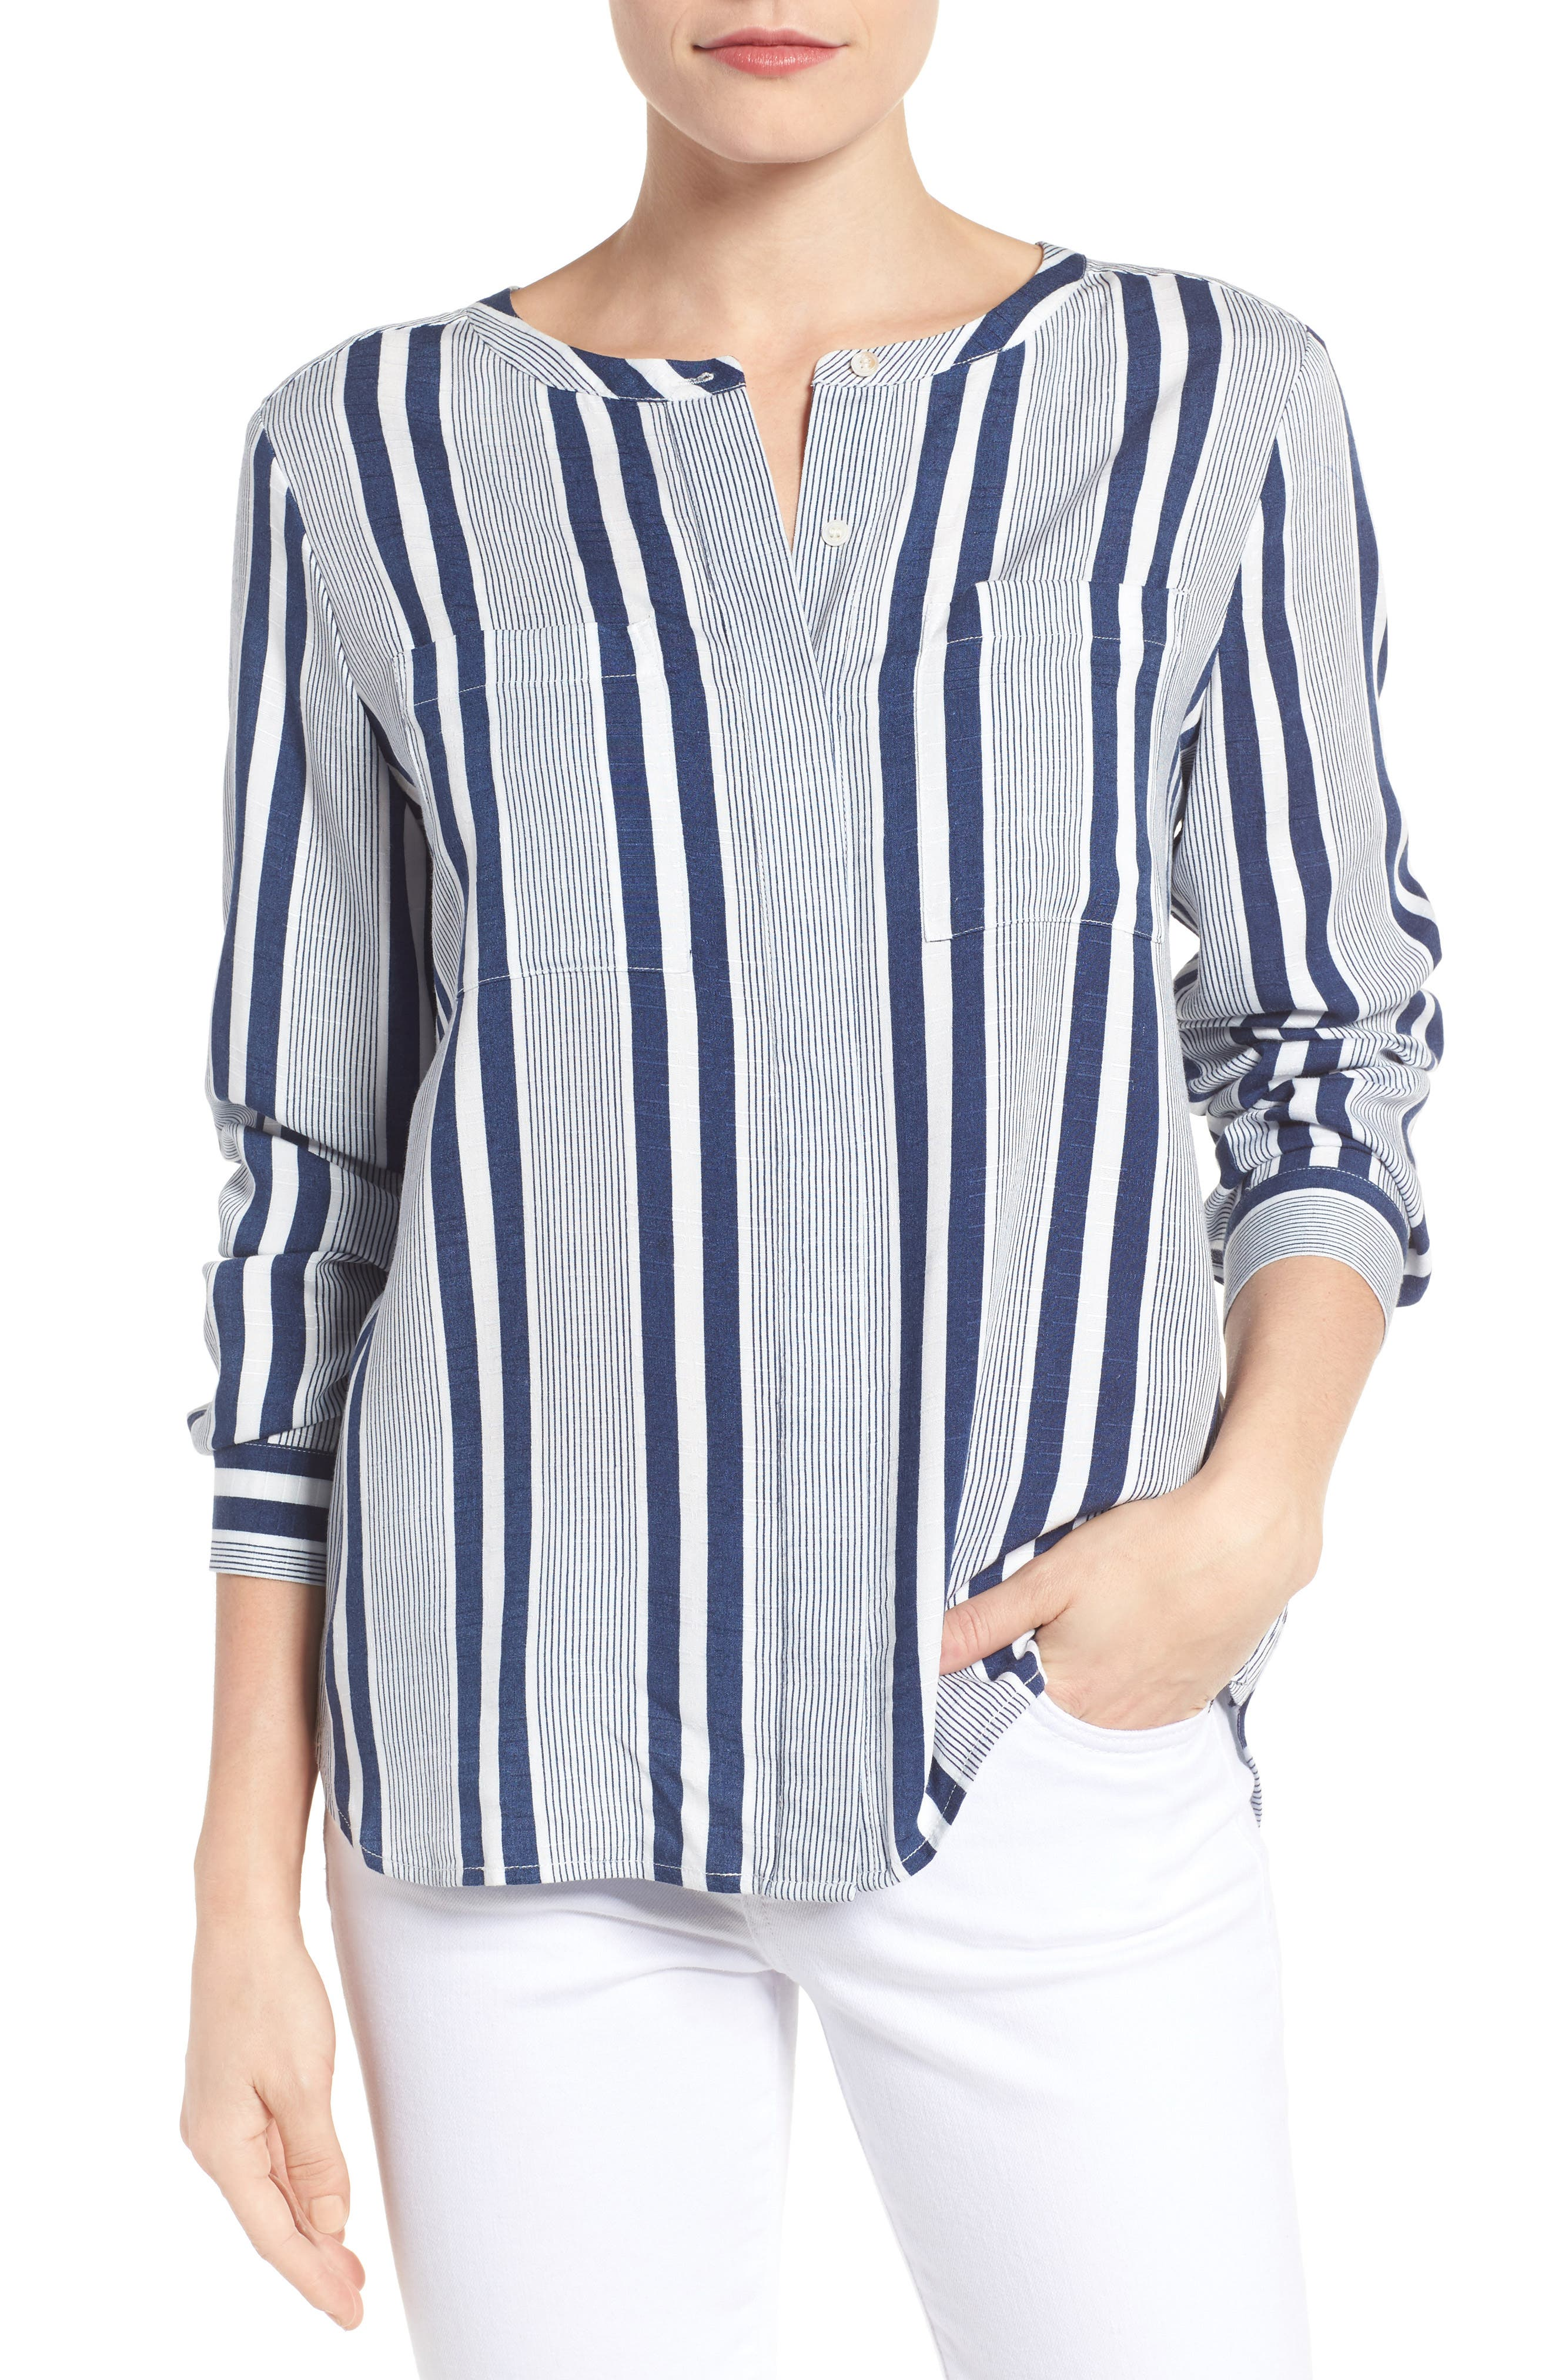 Alternate Image 1 Selected - Two by Vince Camuto Stripe Blouse